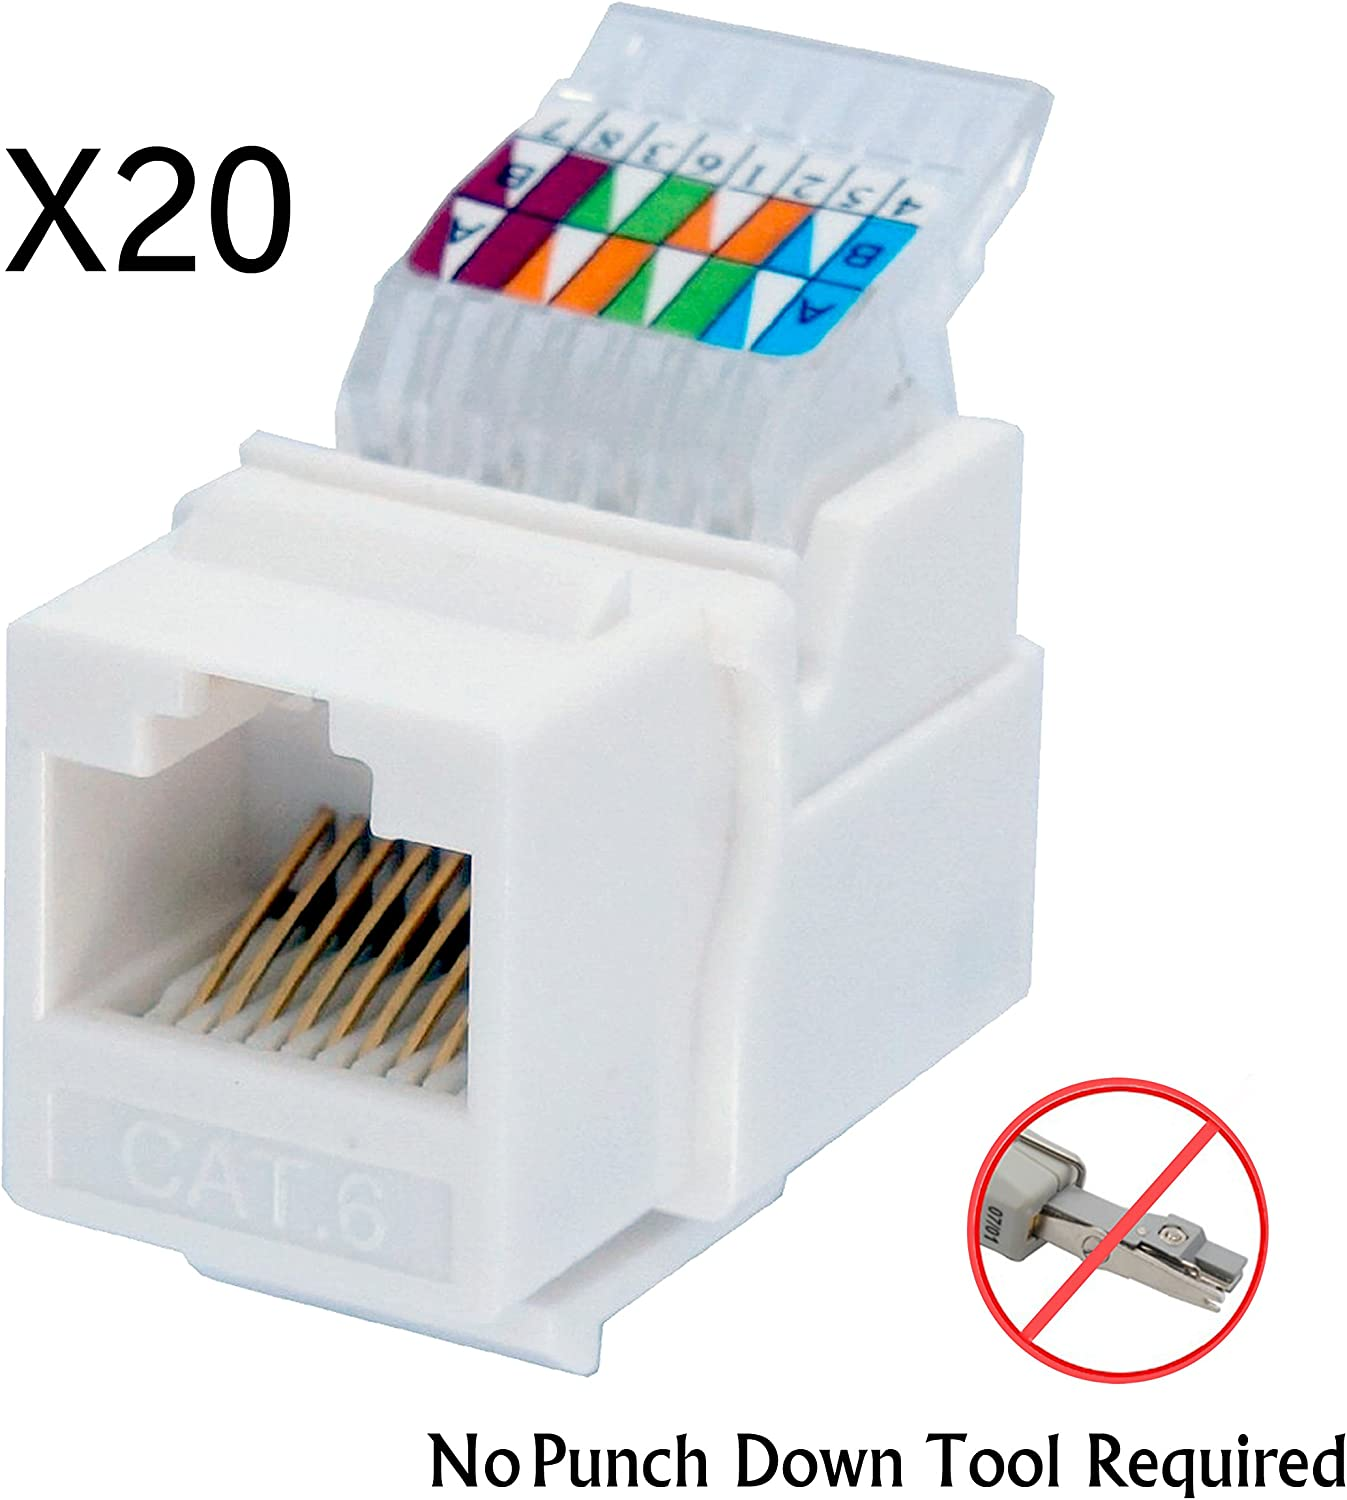 Amazon.com: IDC RJ45 CAT6/CAT5e Tool-Less No Punch Down Tool Required Gold  Plated Keystone Jack, 10 GB Ethernet Cable Patch Panel Wall Plate w  Standard Keystone Port, with Color Coded Wiring Schema Snap | Punch Cat 5 Wiring Diagram |  | Amazon.com